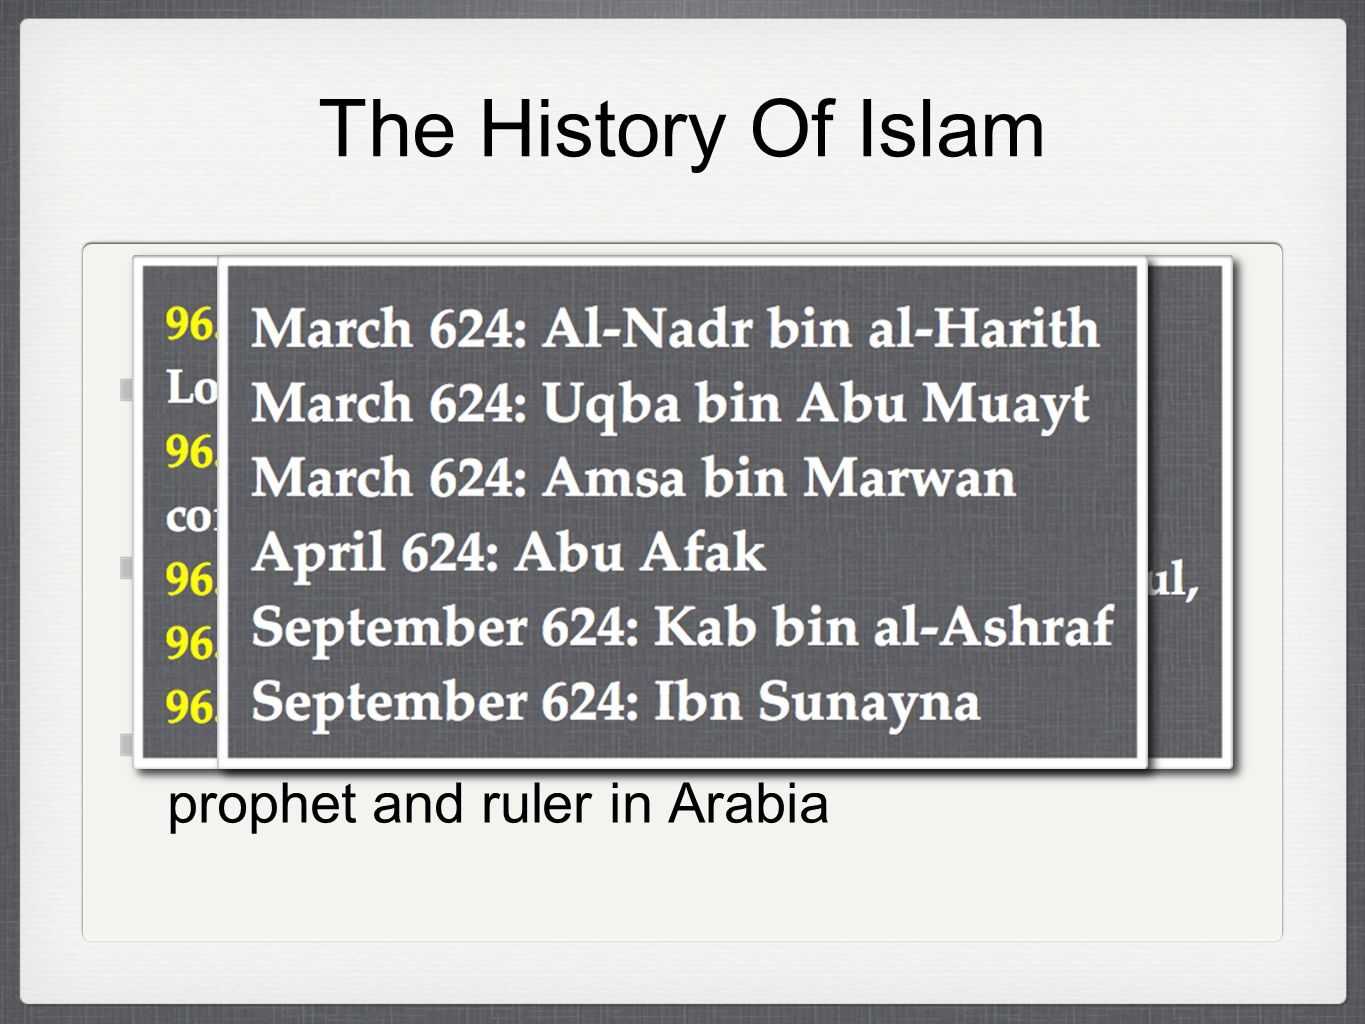 The History Of Islam Muhammad received his revelation from Gabriel and wrote Surah 96:1-5 He moved to Medina and became a relent- less warrior, intent on spreading by force When he died in 632, he was the accepted prophet and ruler in Arabia